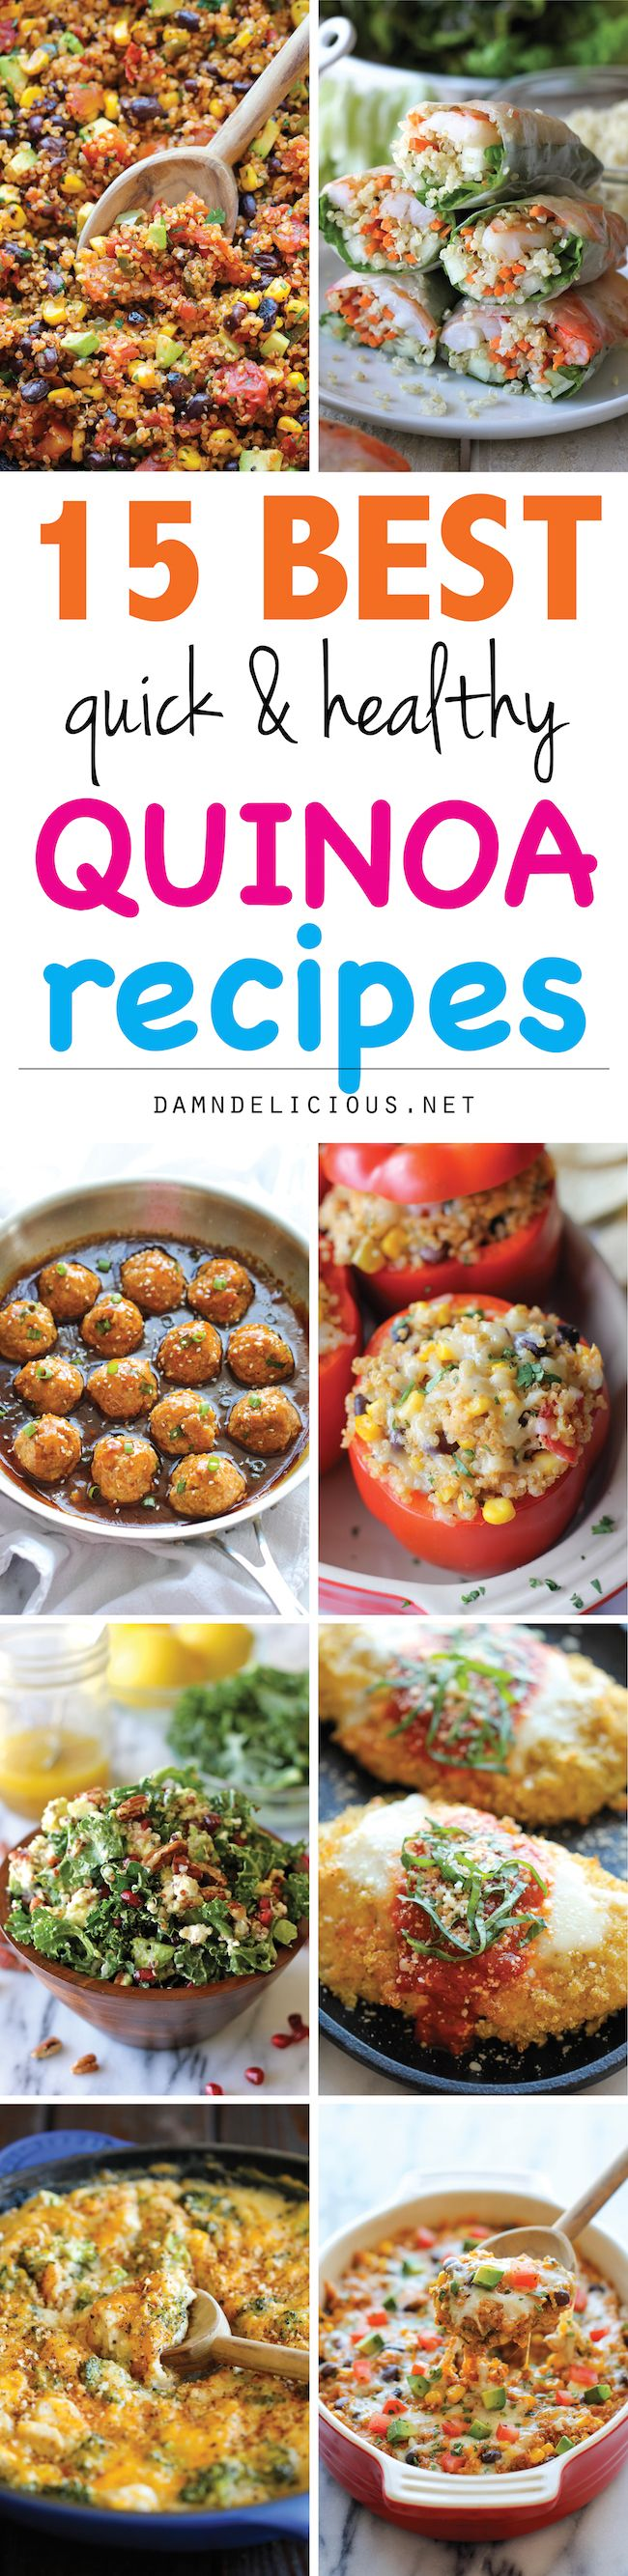 """15 Best Quick and Healthy Quinoa Recipes - So easy, nutritious and hearty. Best of all, they don't even taste """"healthy""""!"""